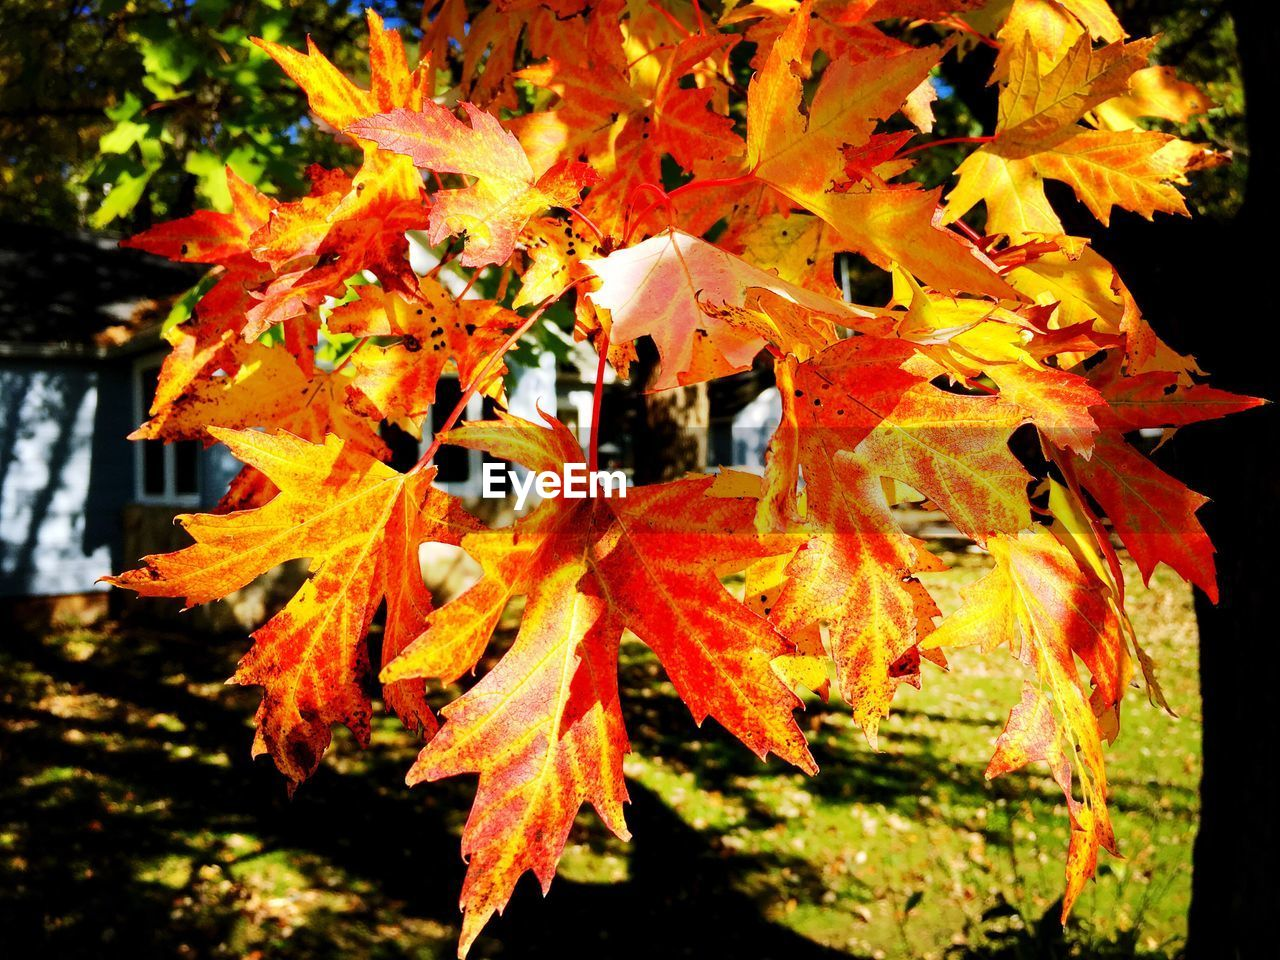 autumn, leaf, change, orange color, maple leaf, outdoors, tree, day, nature, no people, maple tree, close-up, beauty in nature, fragility, maple, growth, focus on foreground, building exterior, freshness